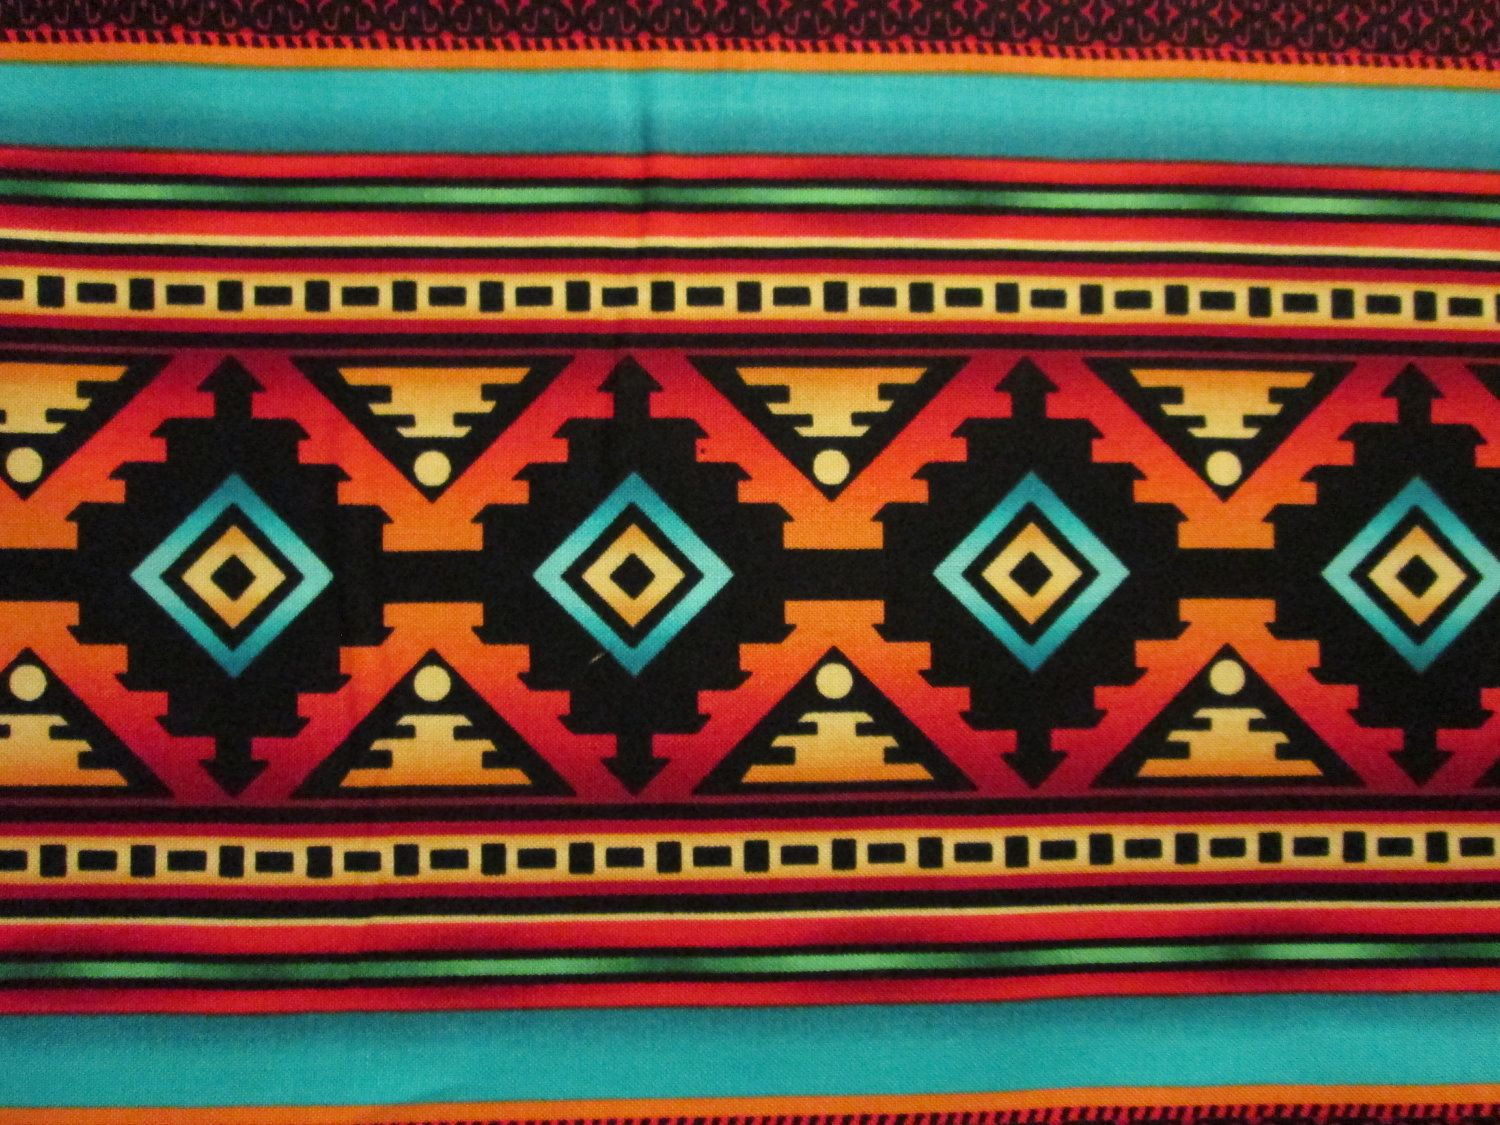 Navajo Teal Border Traditional Native American Print Cotton Fabric 299 Via Etsy  N